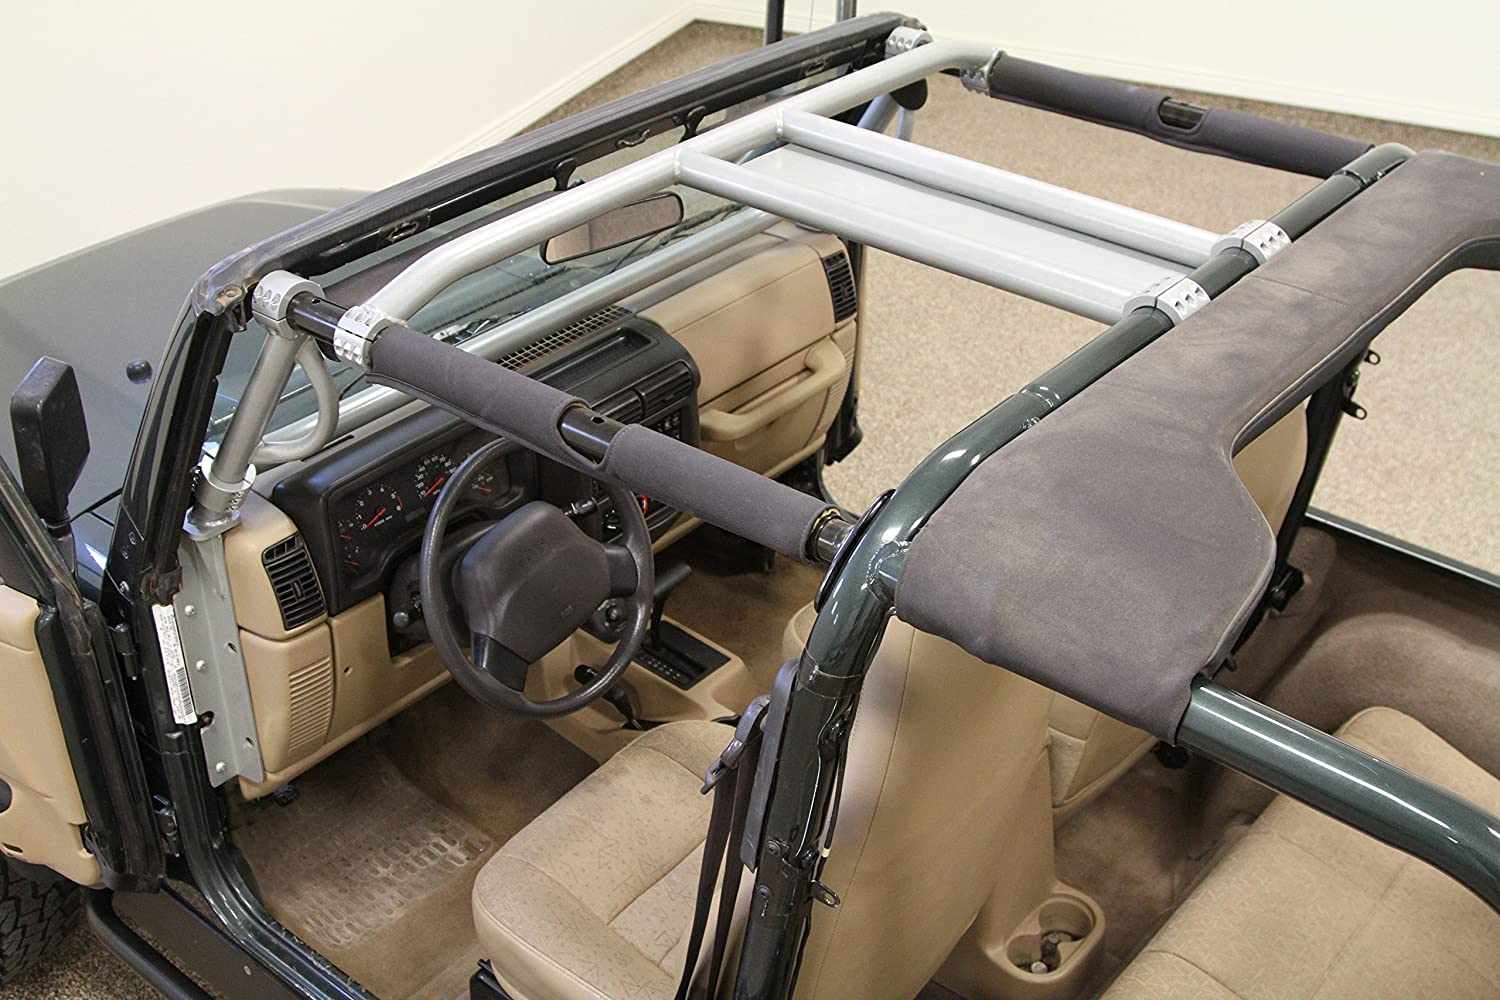 Rock Hard 4x4 Straight Across Front Harness Bar for Jeep Wrangler TJ and Unlimited LJ 1997-2006